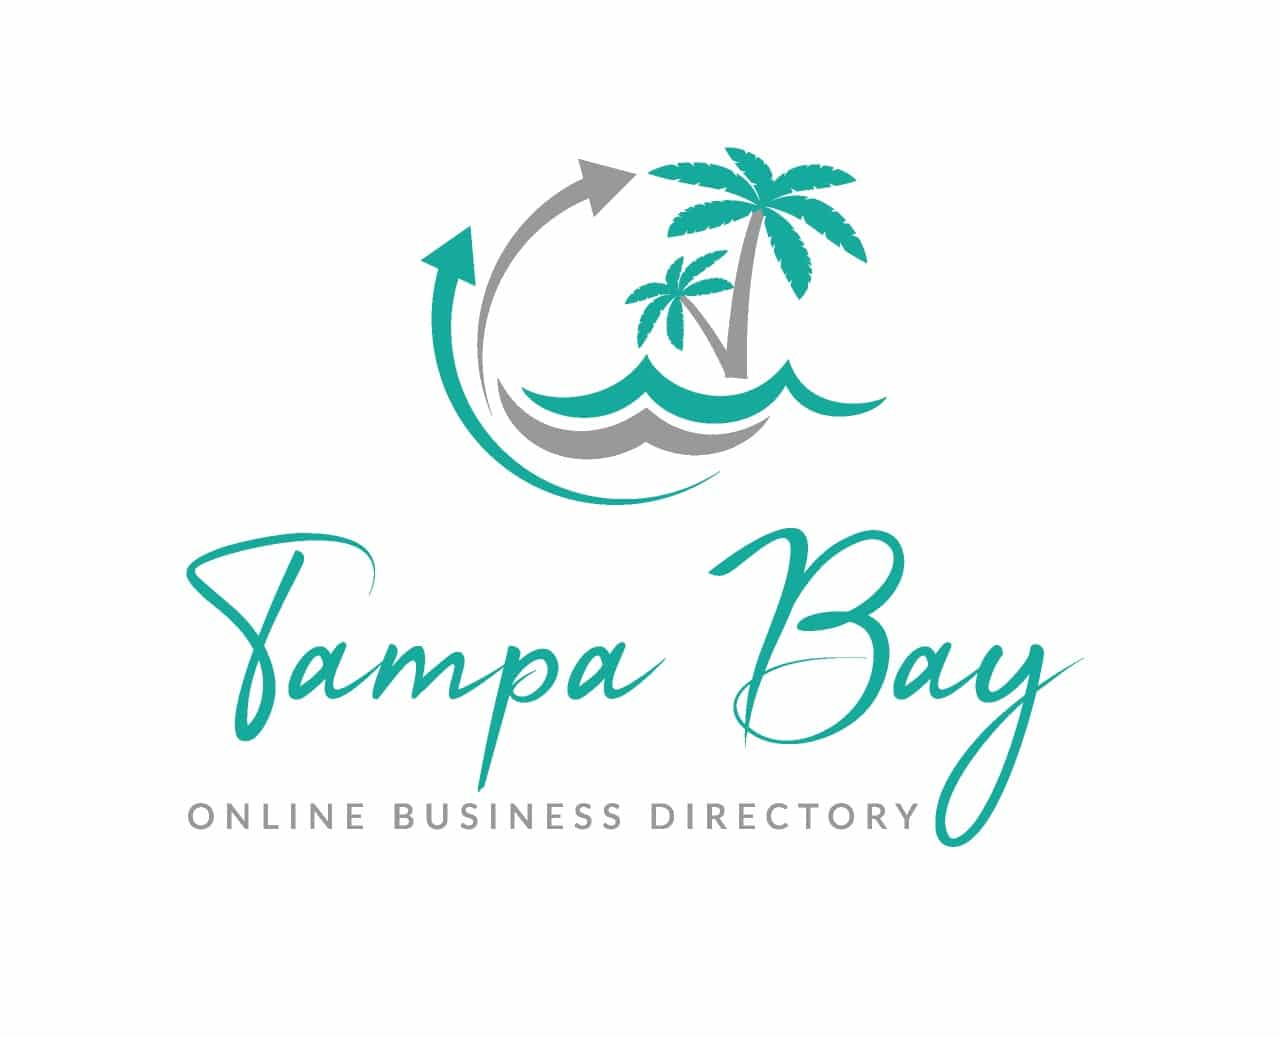 Tampa Bay Online Business Directory